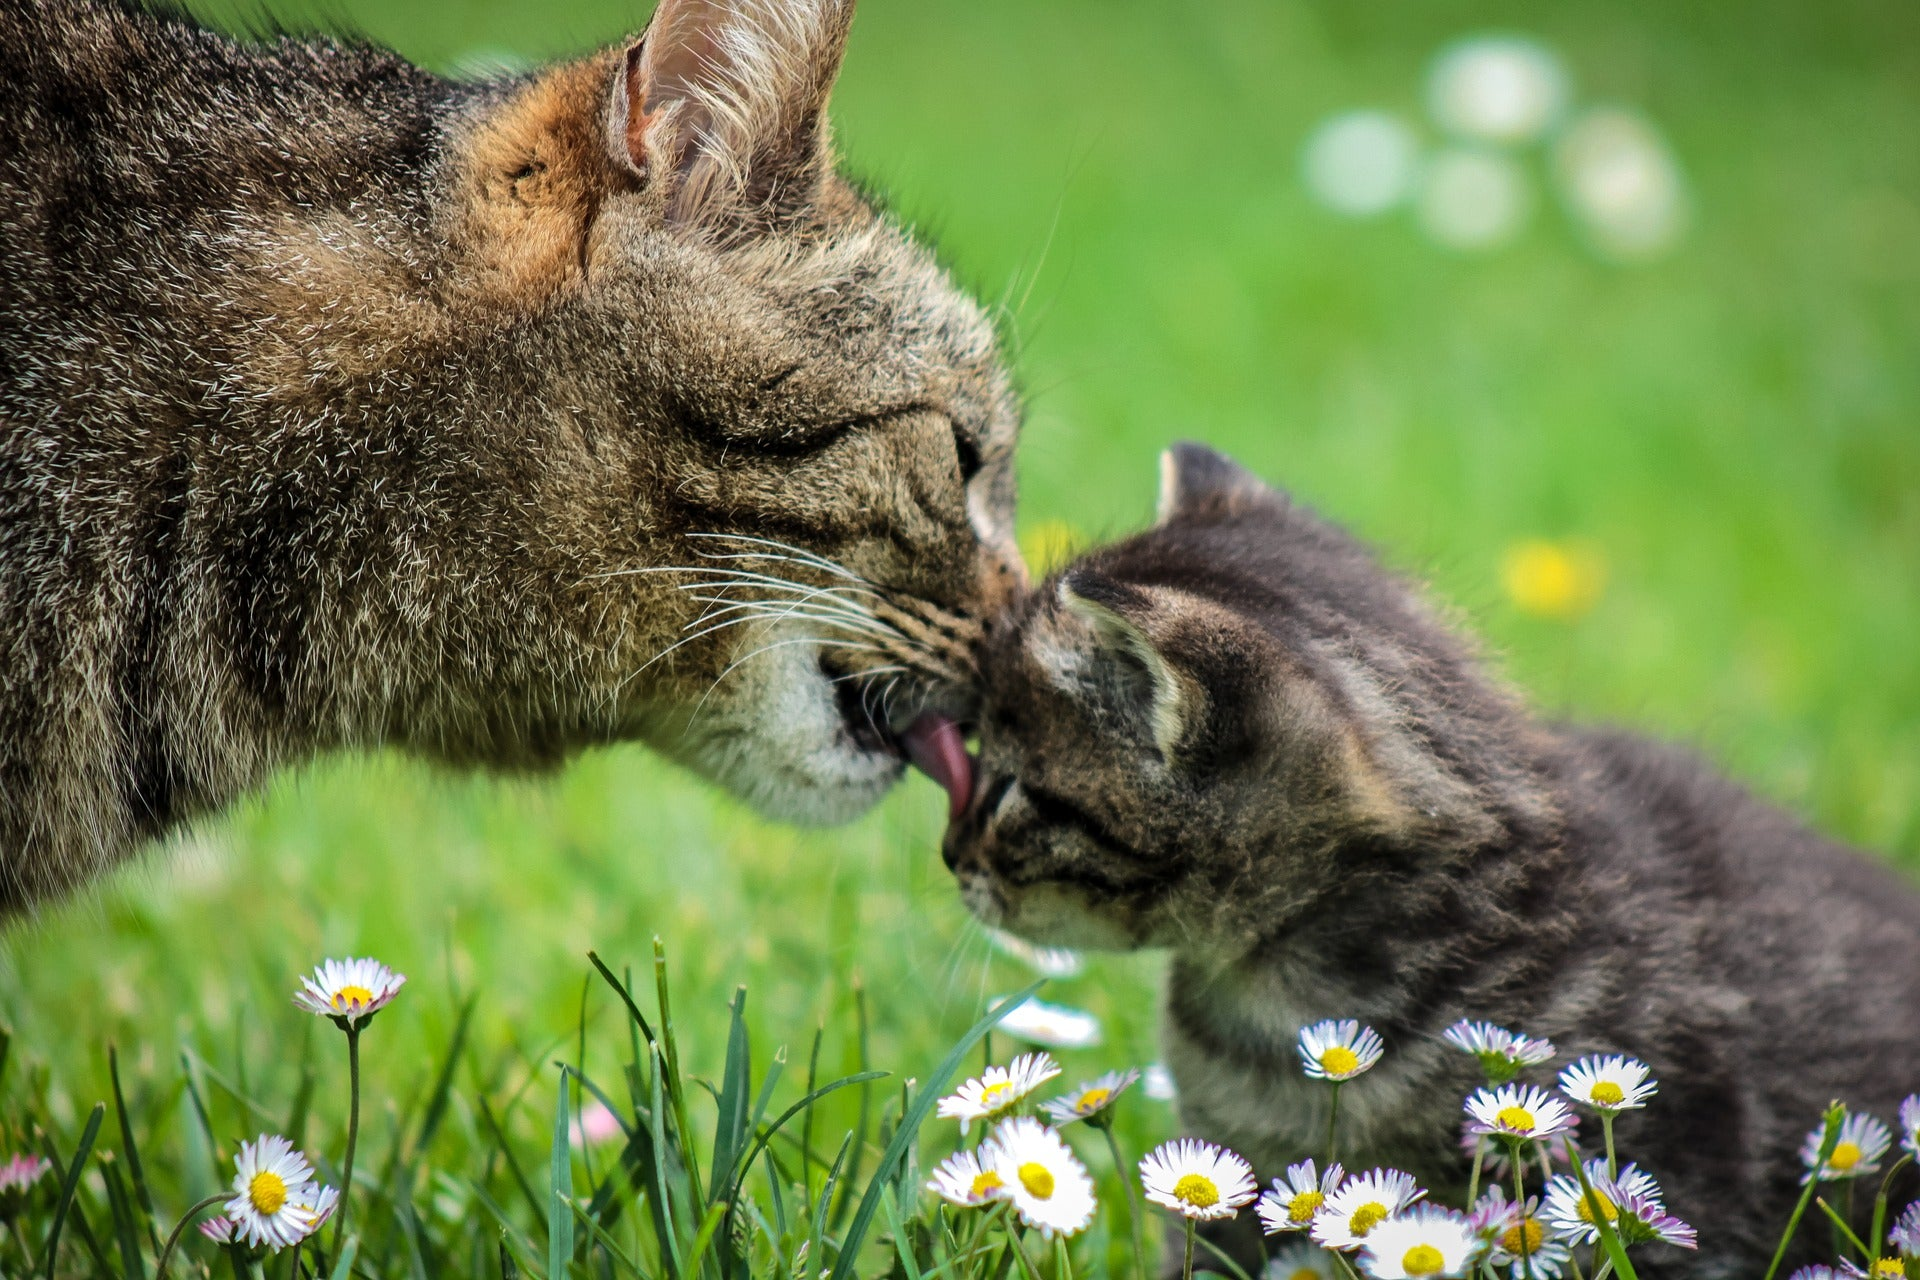 Mama cat cleaning her kitten in grass